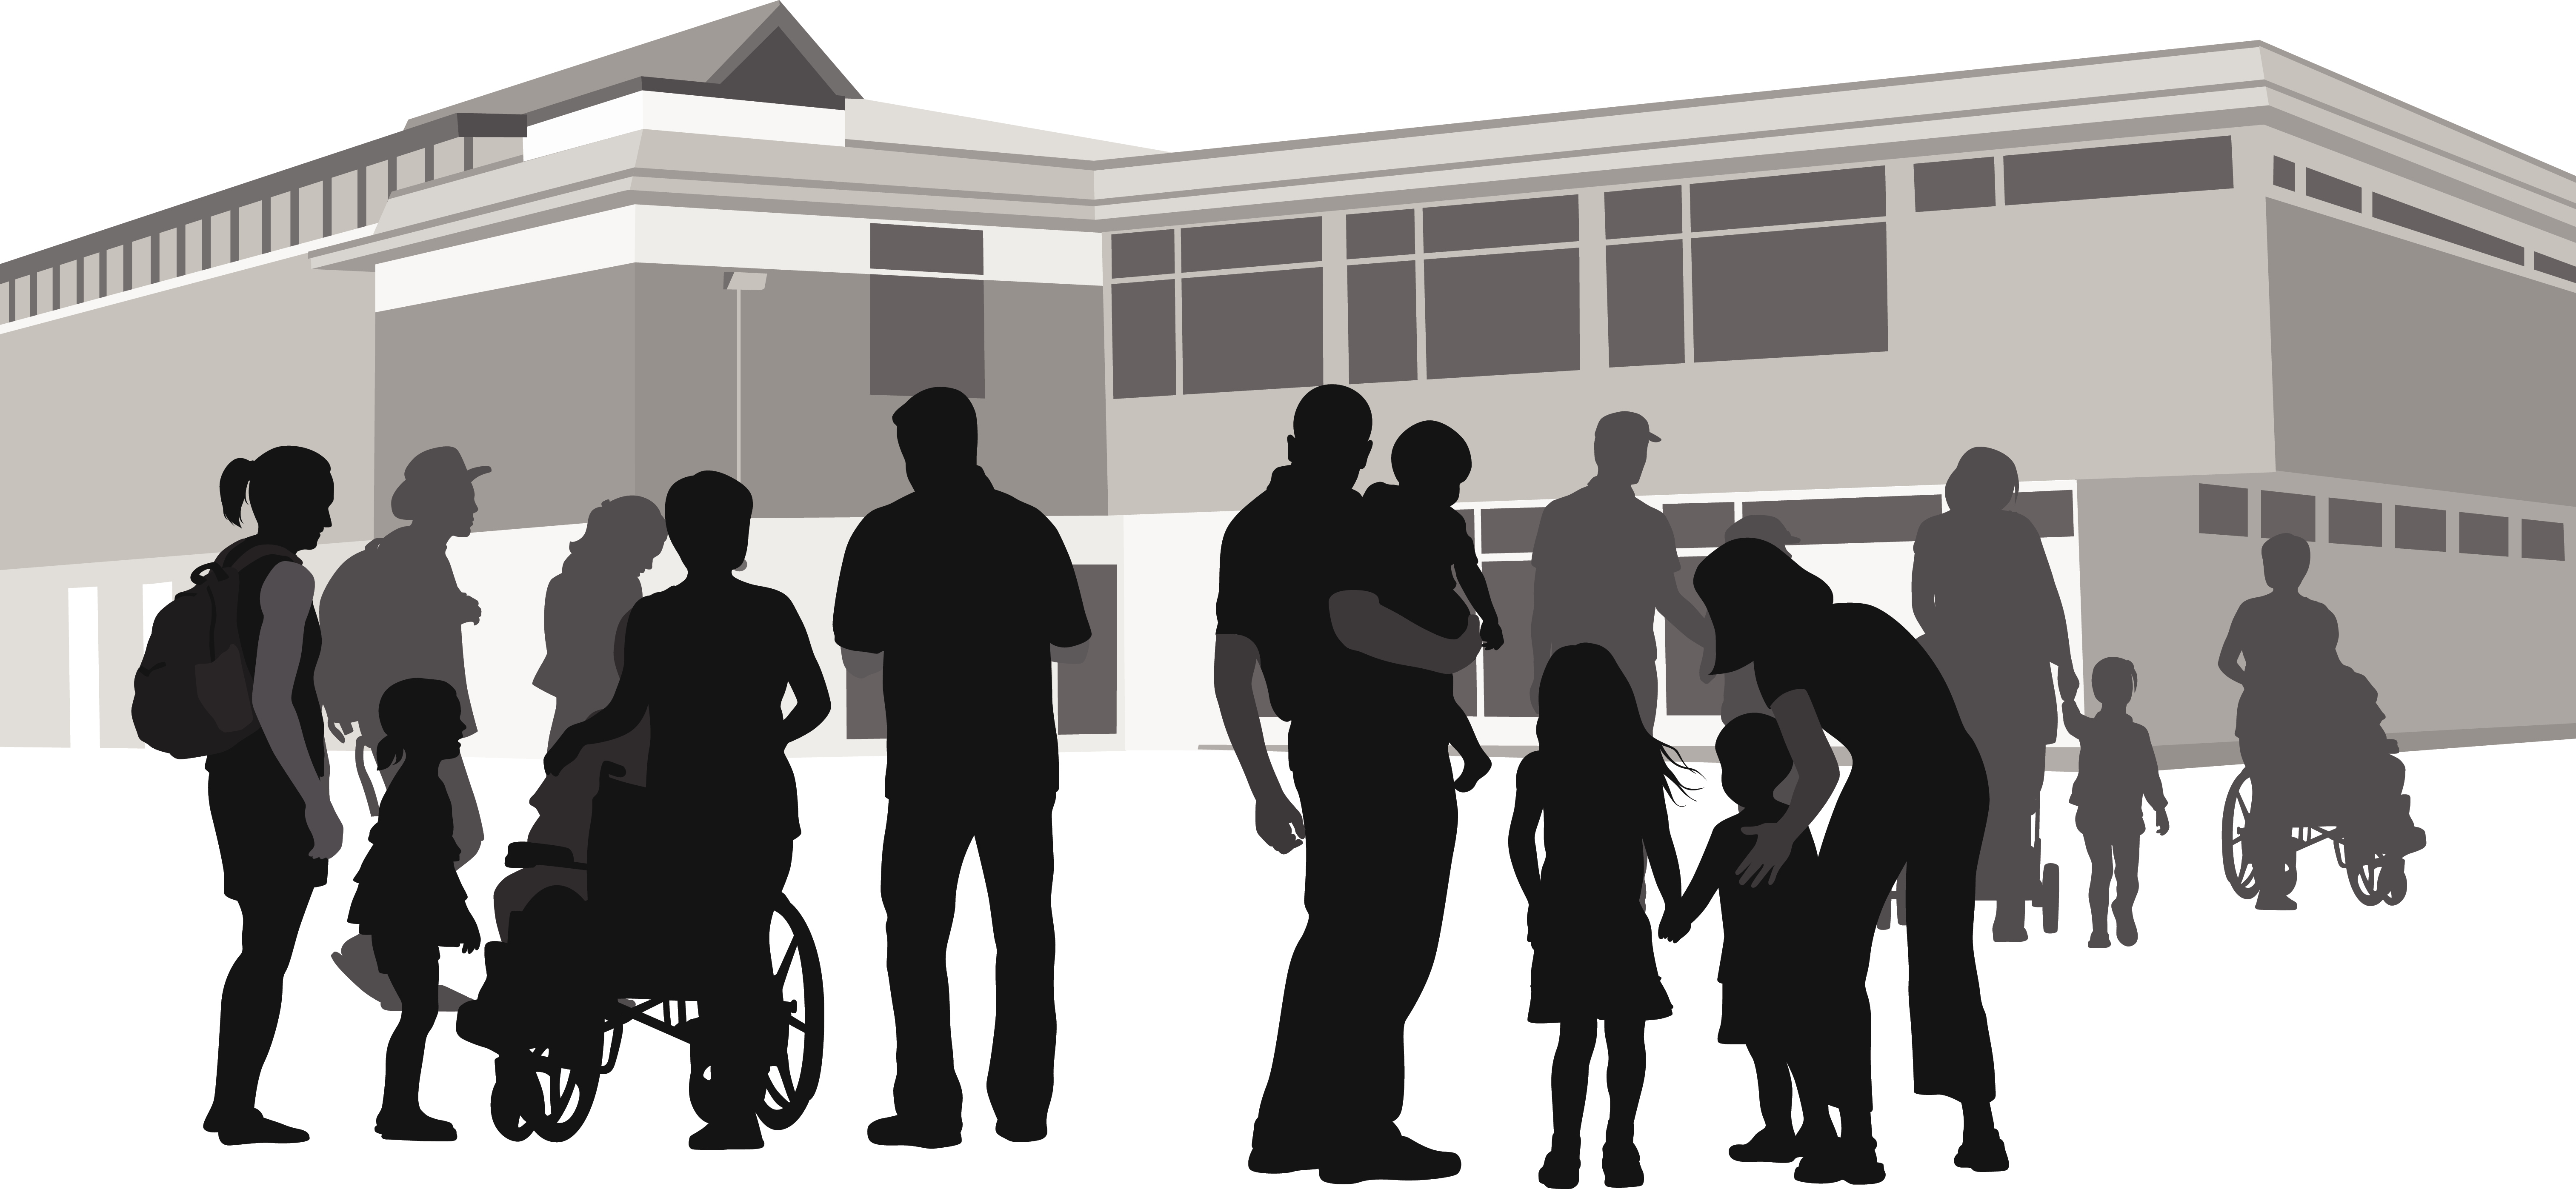 A silhouette vector illustration of several people gathered outside of a comminuty center. There is a young family with three children, a woman pushing a wheelchair, and a young woman waering a backpack with her young daughter.